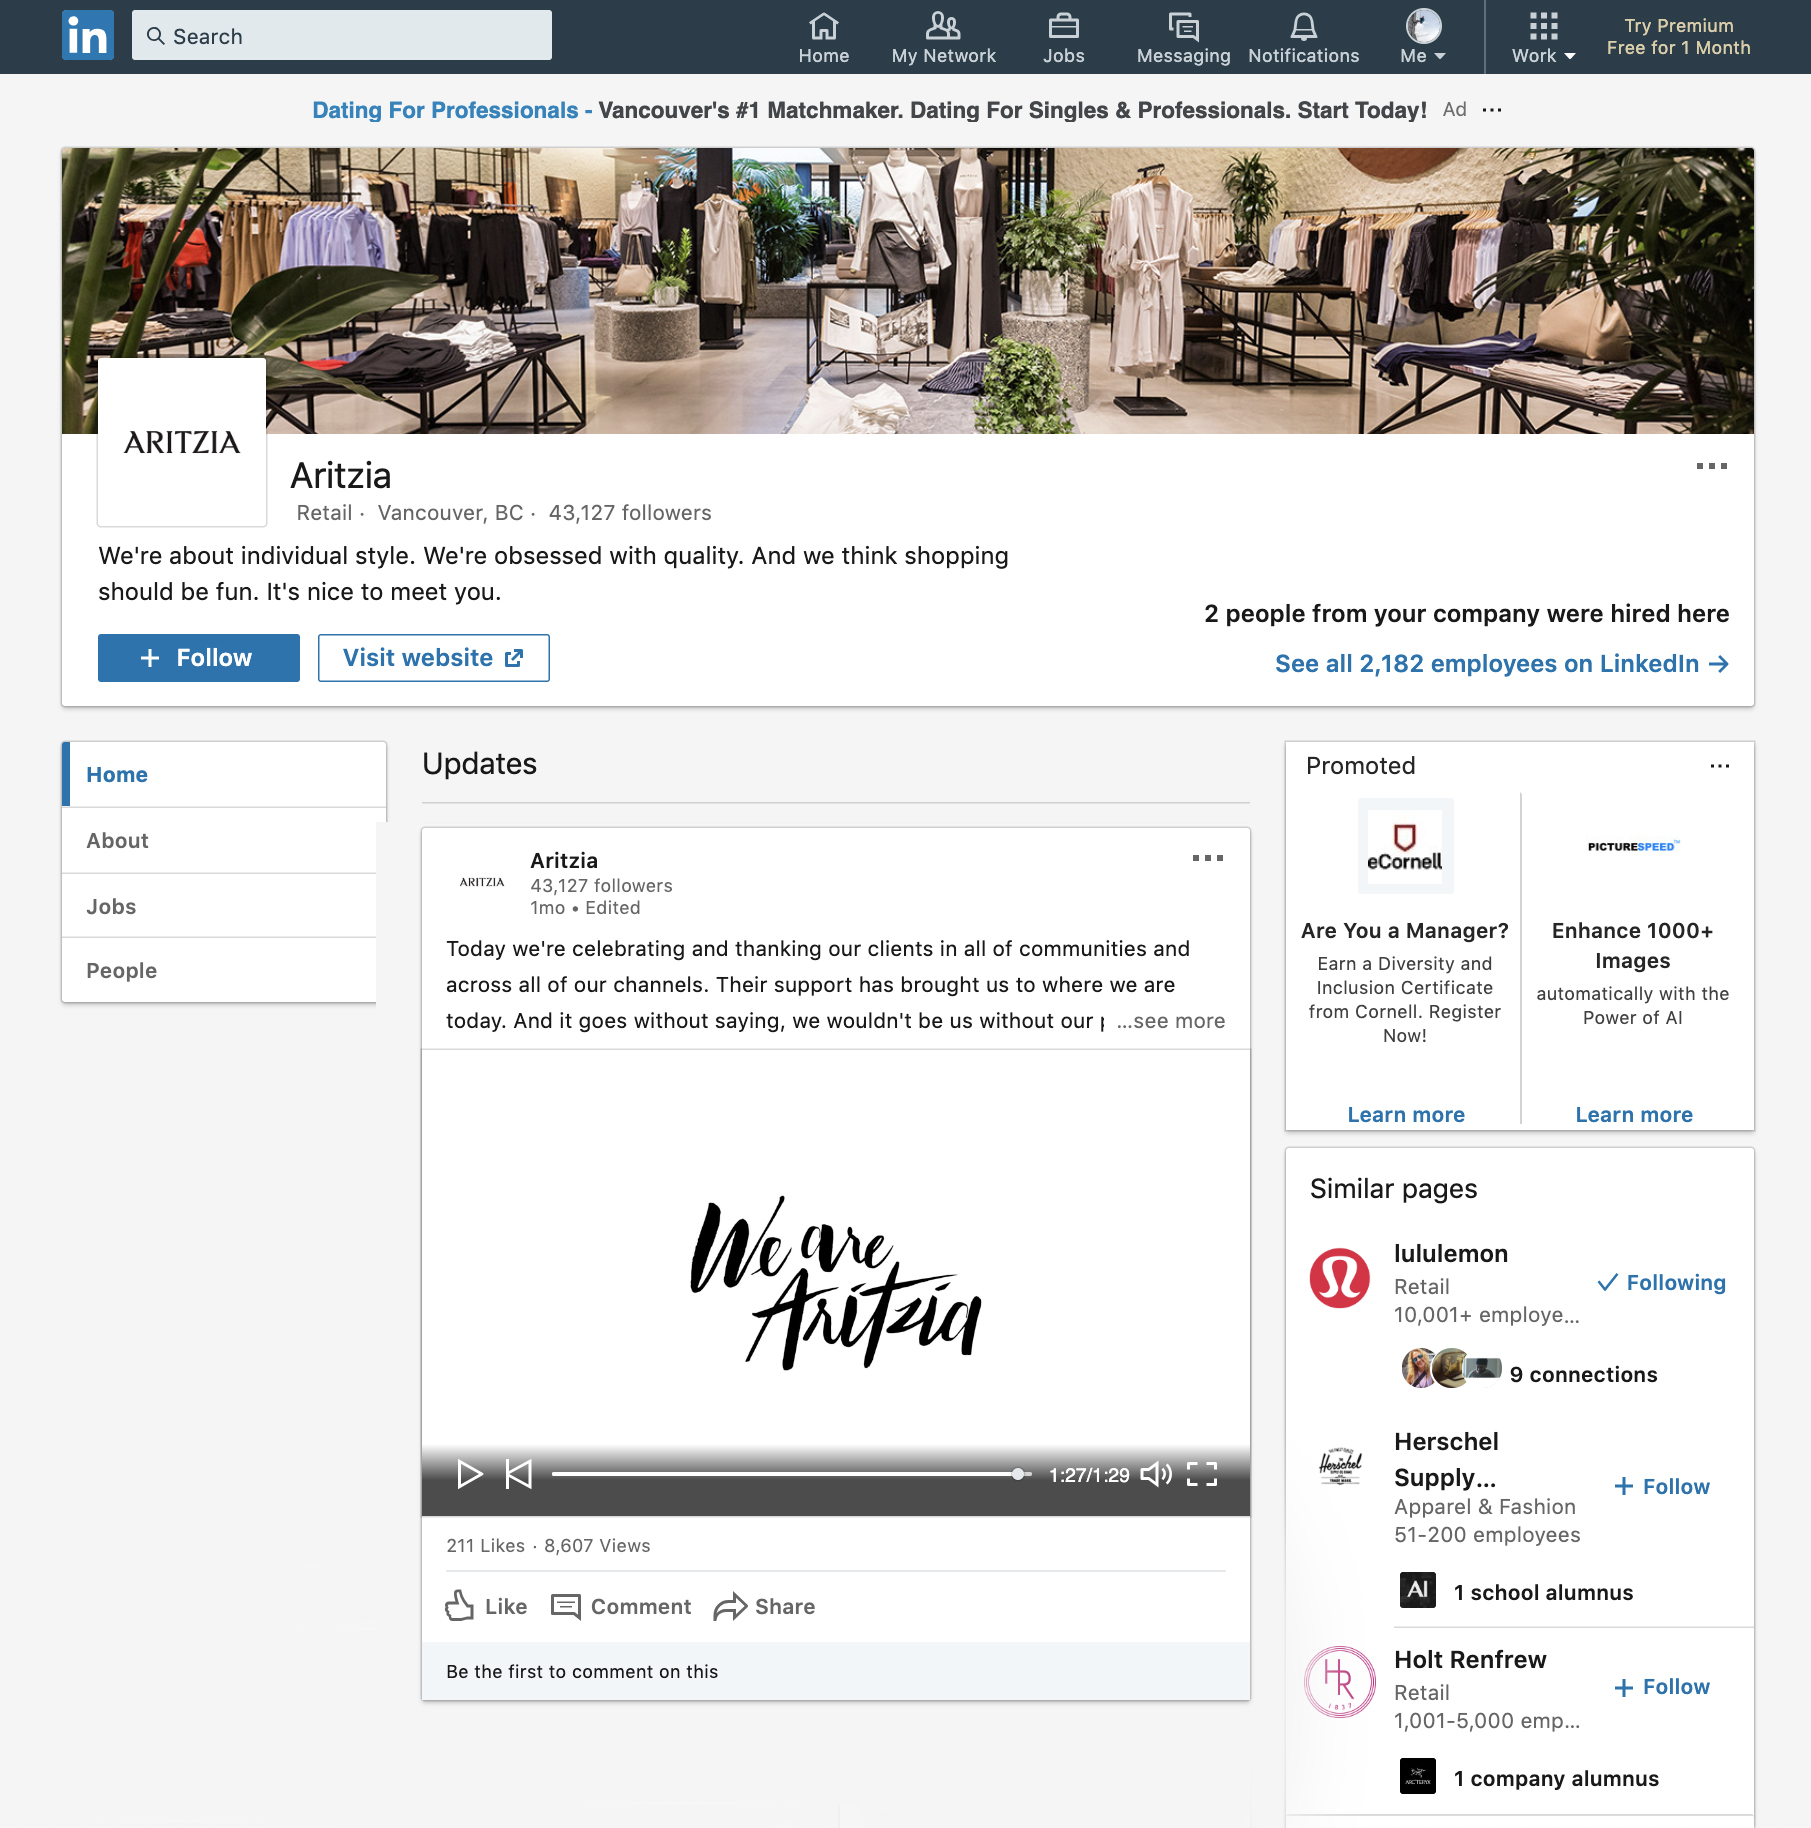 2019 International Women's Day Video made for Aritzia's Linkedin page